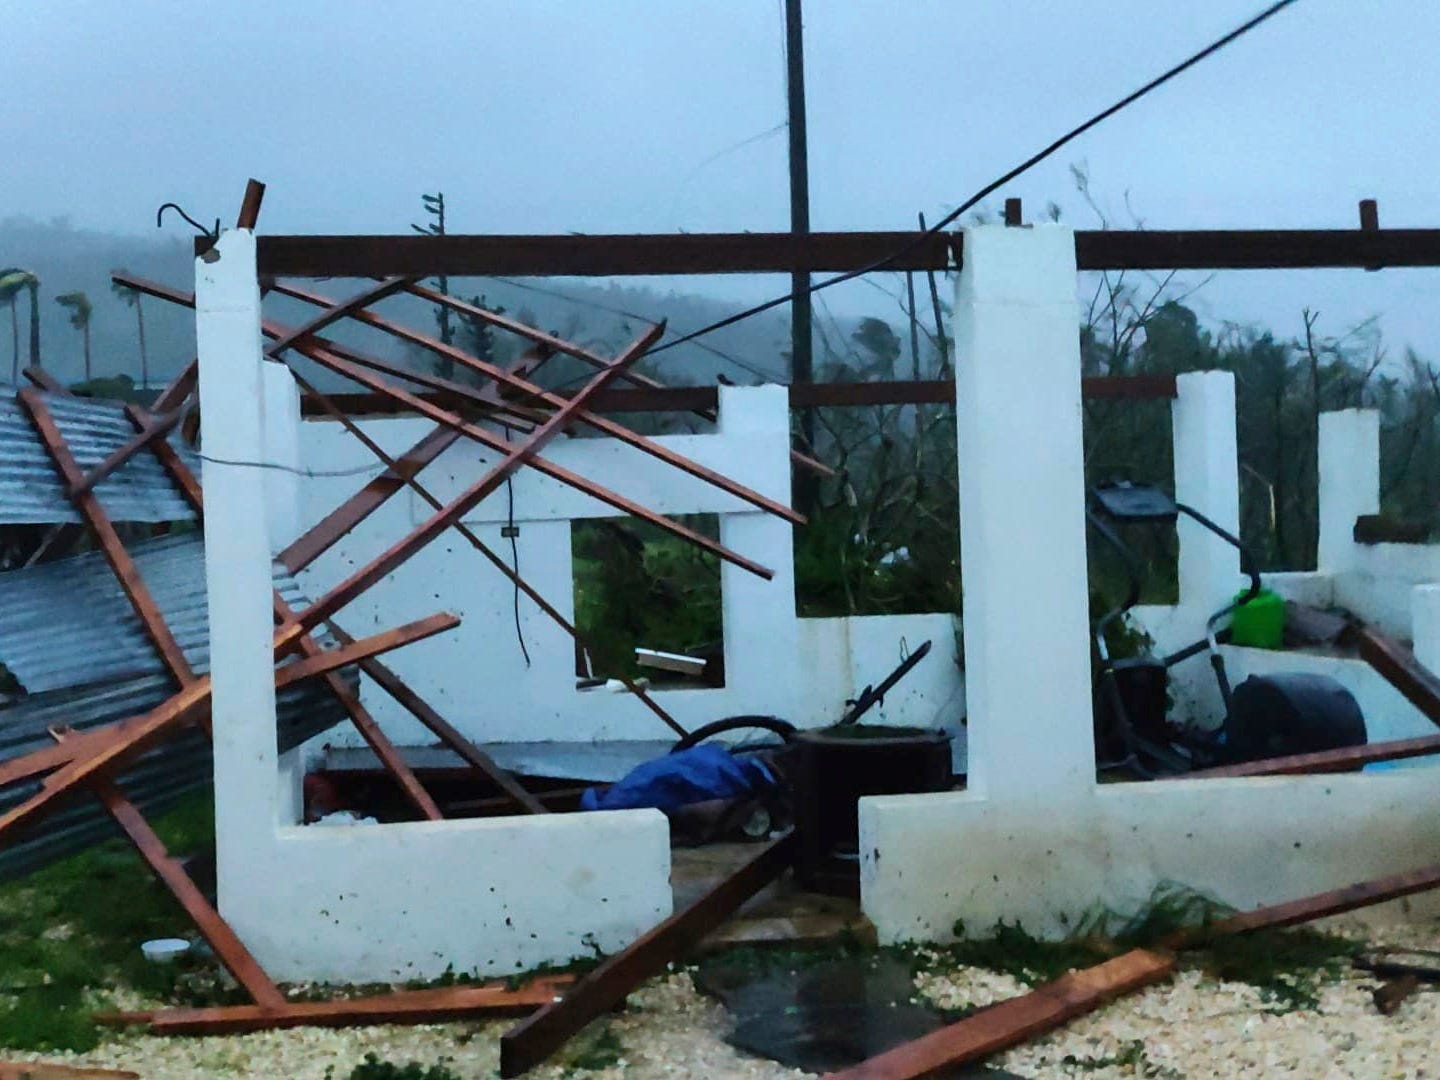 In this photo provided by Glen Hunter, damage from Super Typhoon Yutu is shown outside Hunter's home in Saipan, Commonwealth of the Northern Mariana Islands, Thursday Oct. 25, 2018. As the powerful storm crossed over the island the walls shook in Hunter's concrete home, a tin roof over the garage blew away and howling winds terrified his cats. Maximum sustained winds of 180 mph (290 kph) were recorded around the eye of the storm, which passed over Tinian and Saipan early Thursday local time, the National Weather Service said.